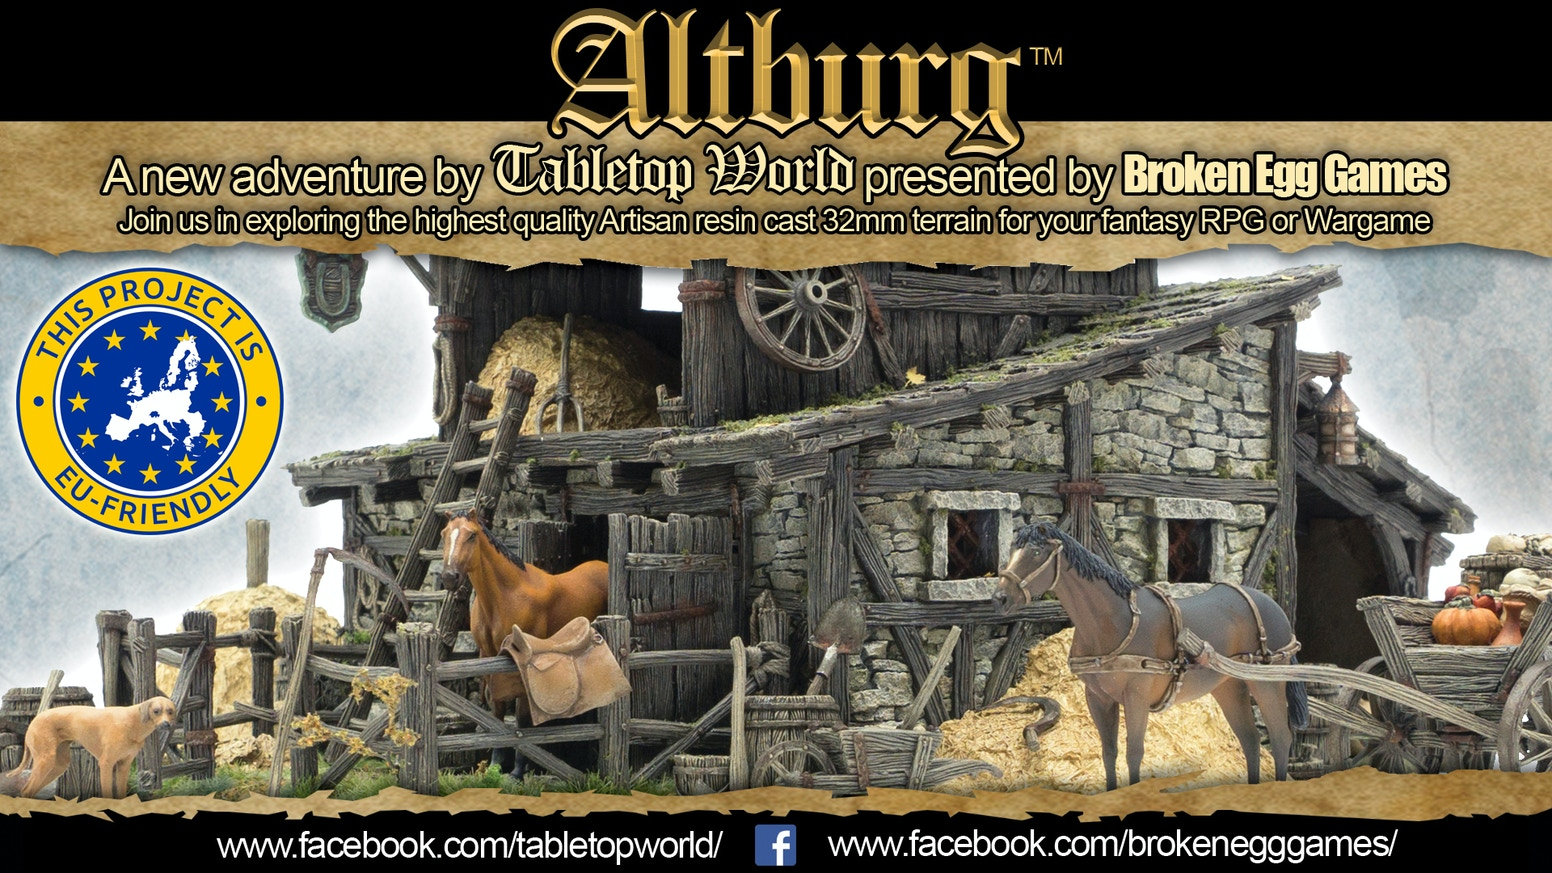 Tabletop World's Altburg Stable 32mm resin cast terrain by